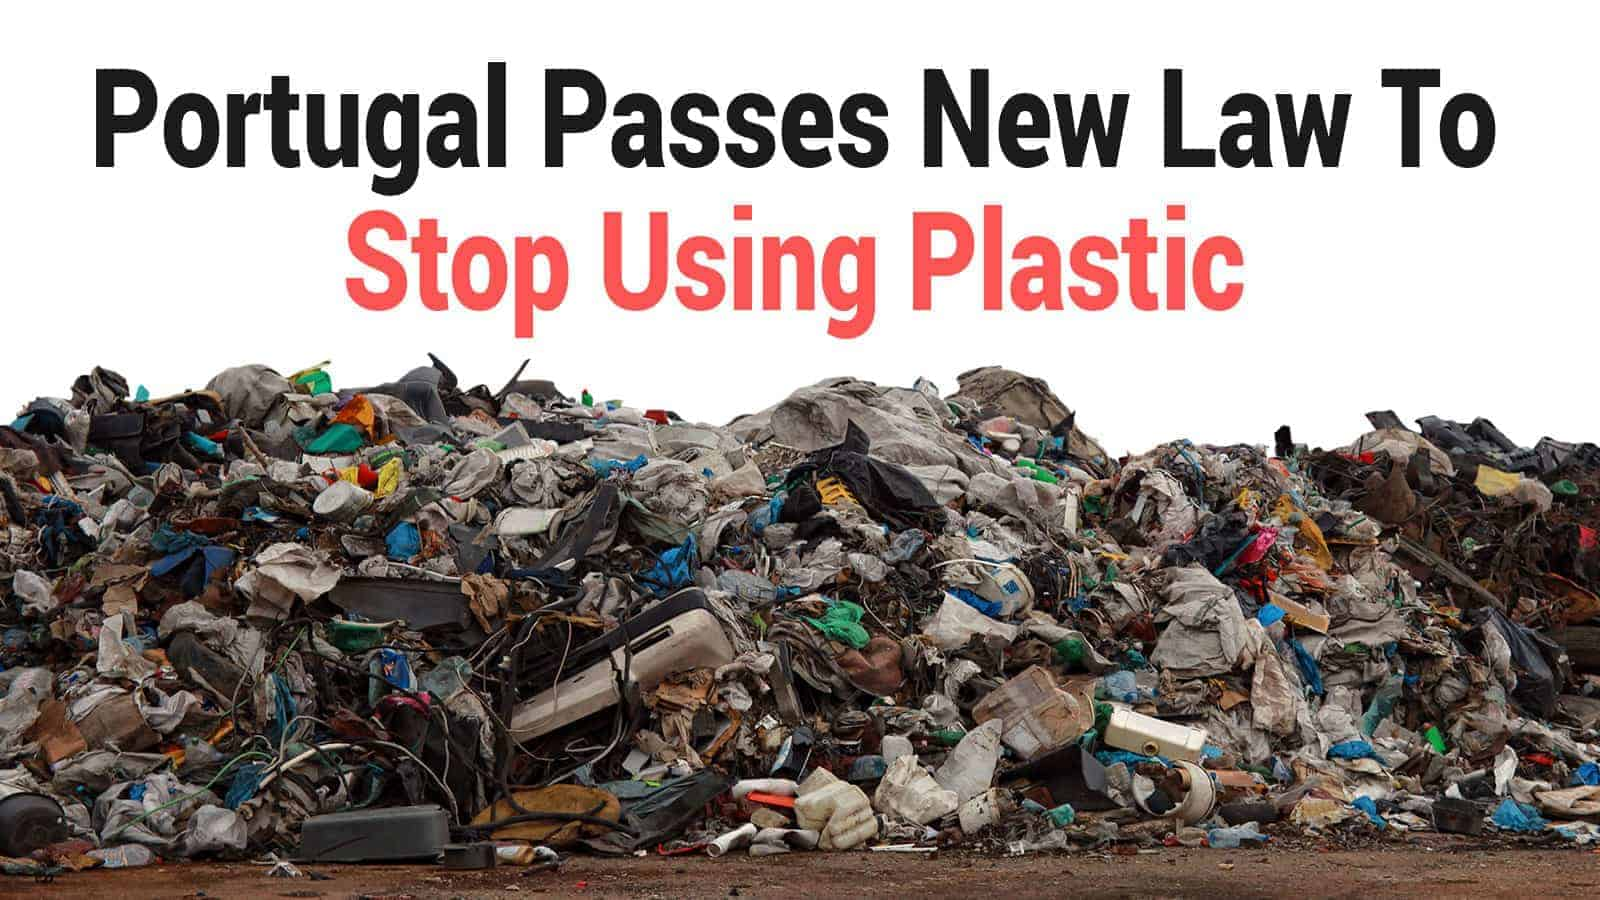 Portugal Passes New Law To Stop Using Plastic »